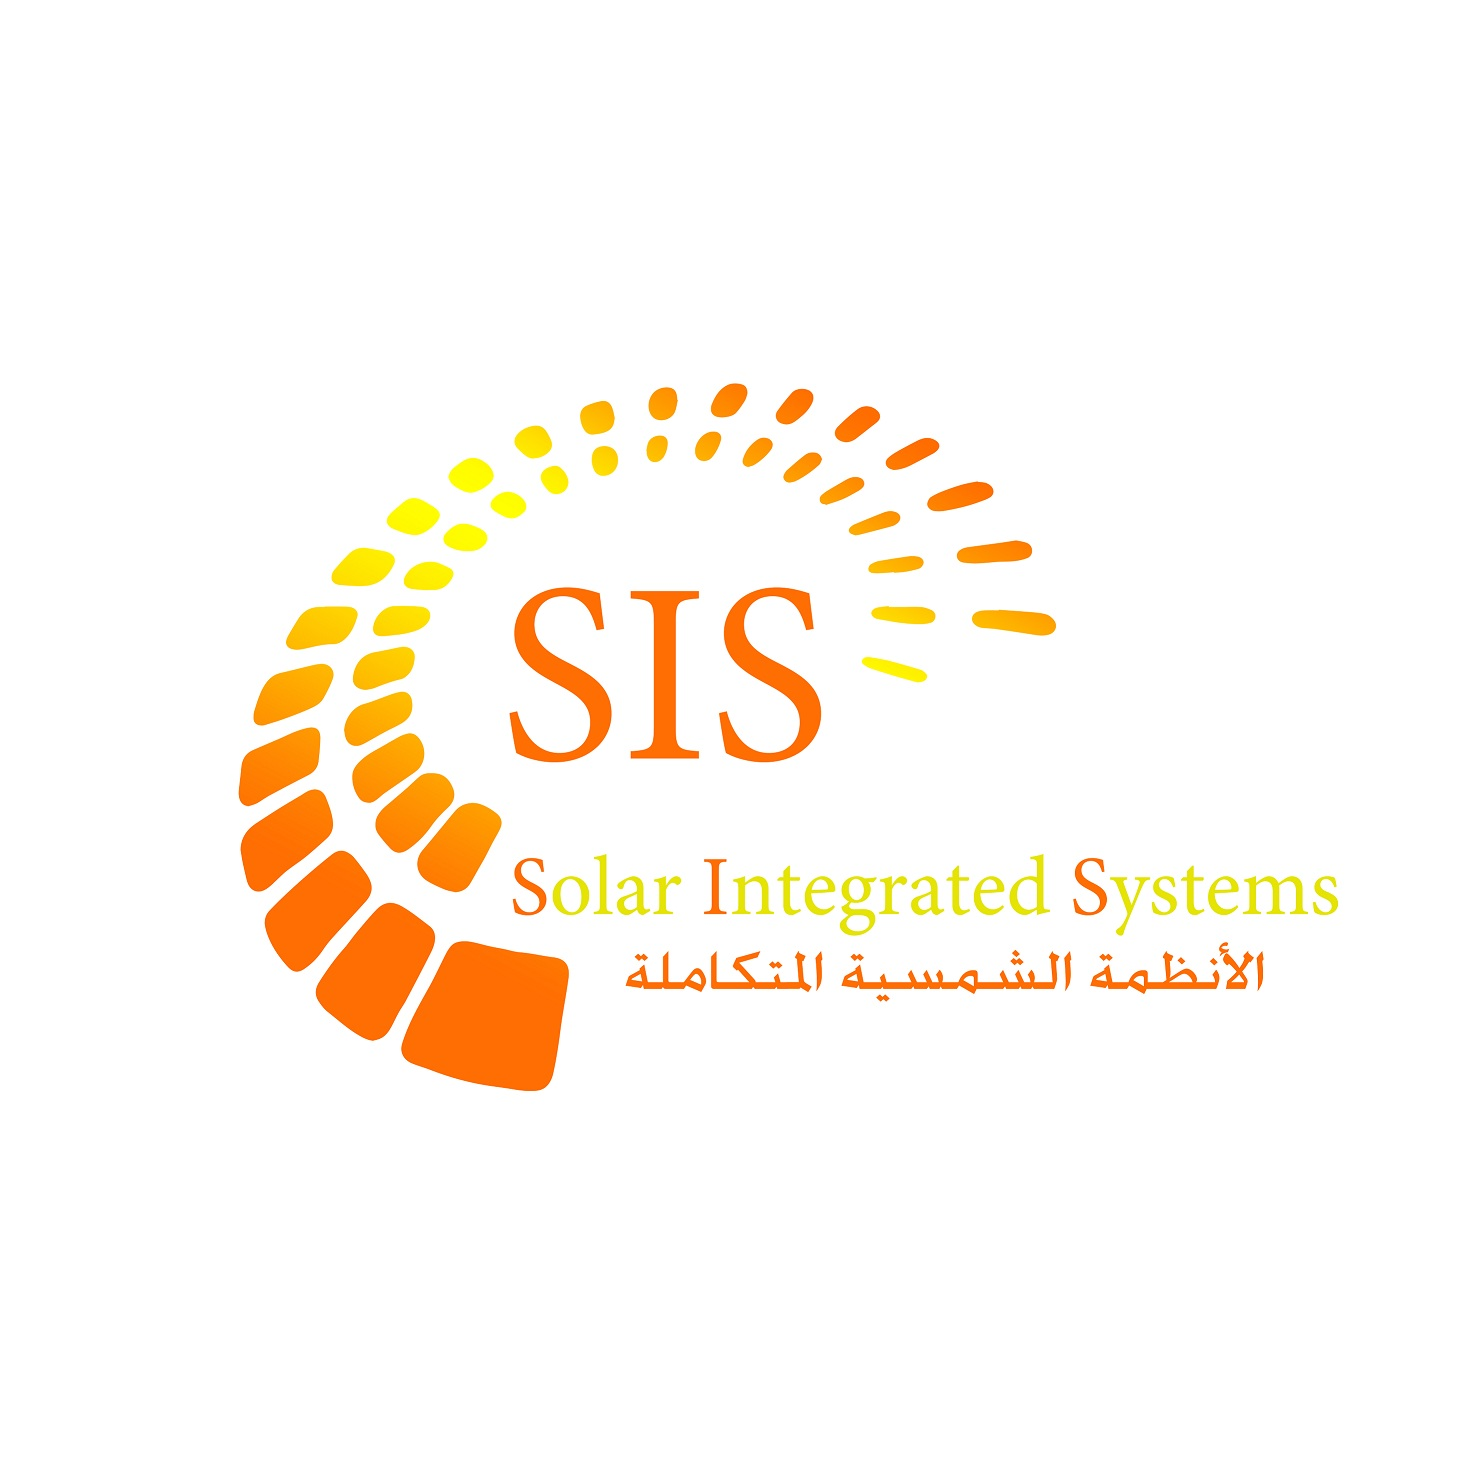 SIS solar integrated systems